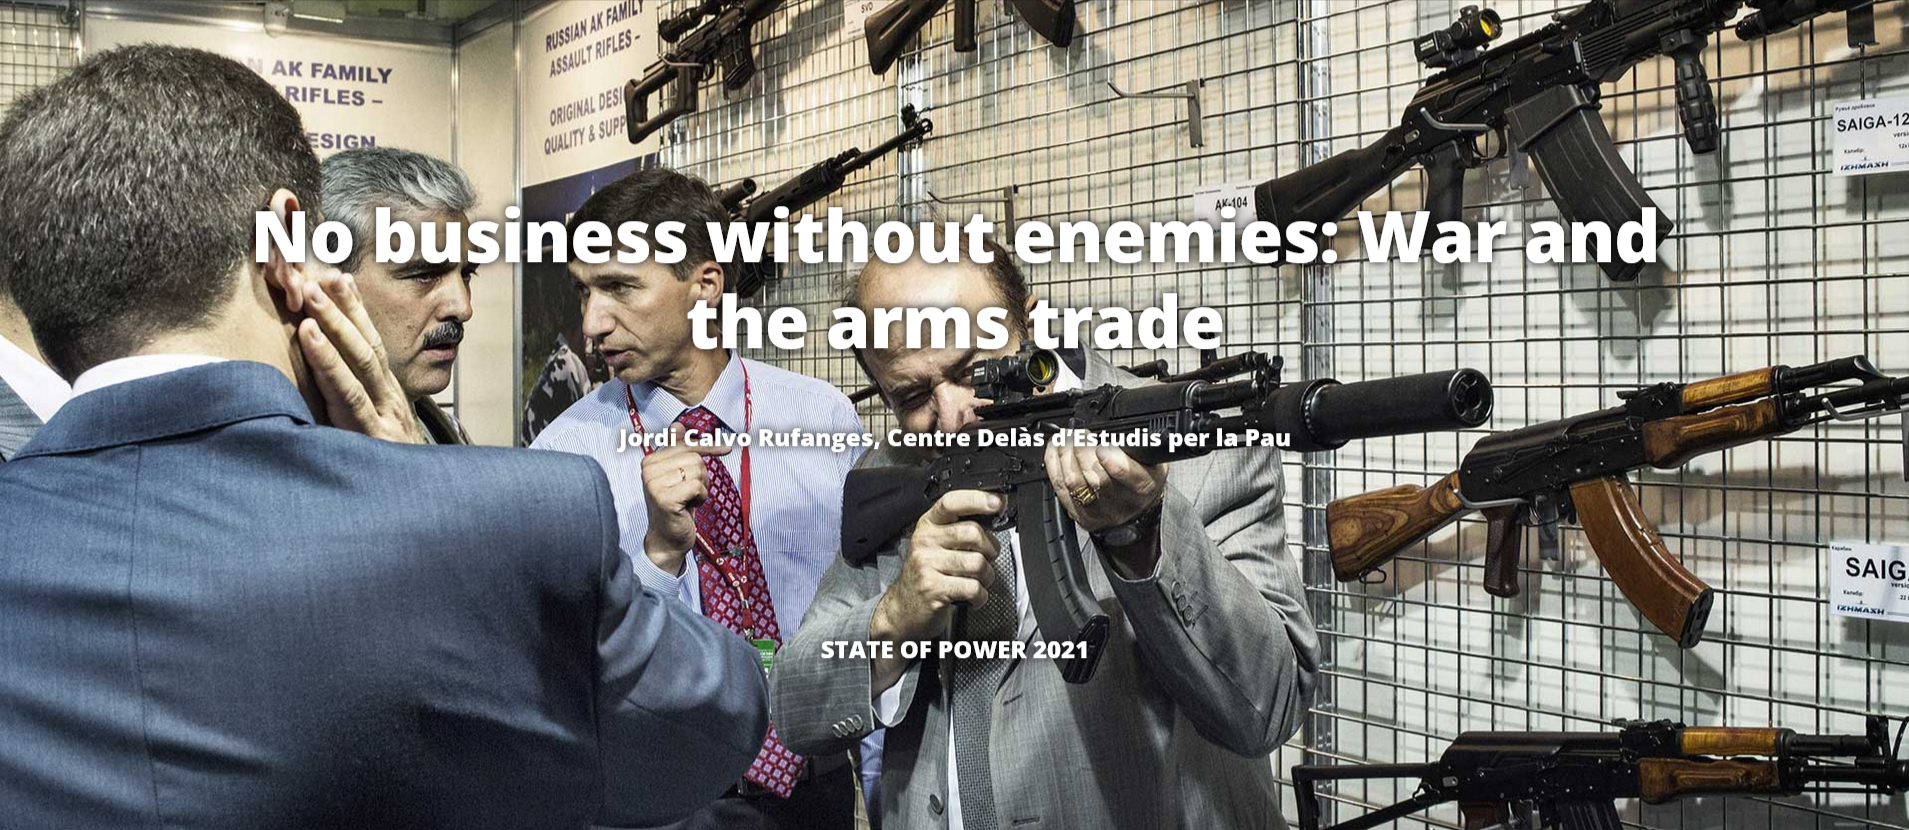 No business without enemies: War and the arms trade